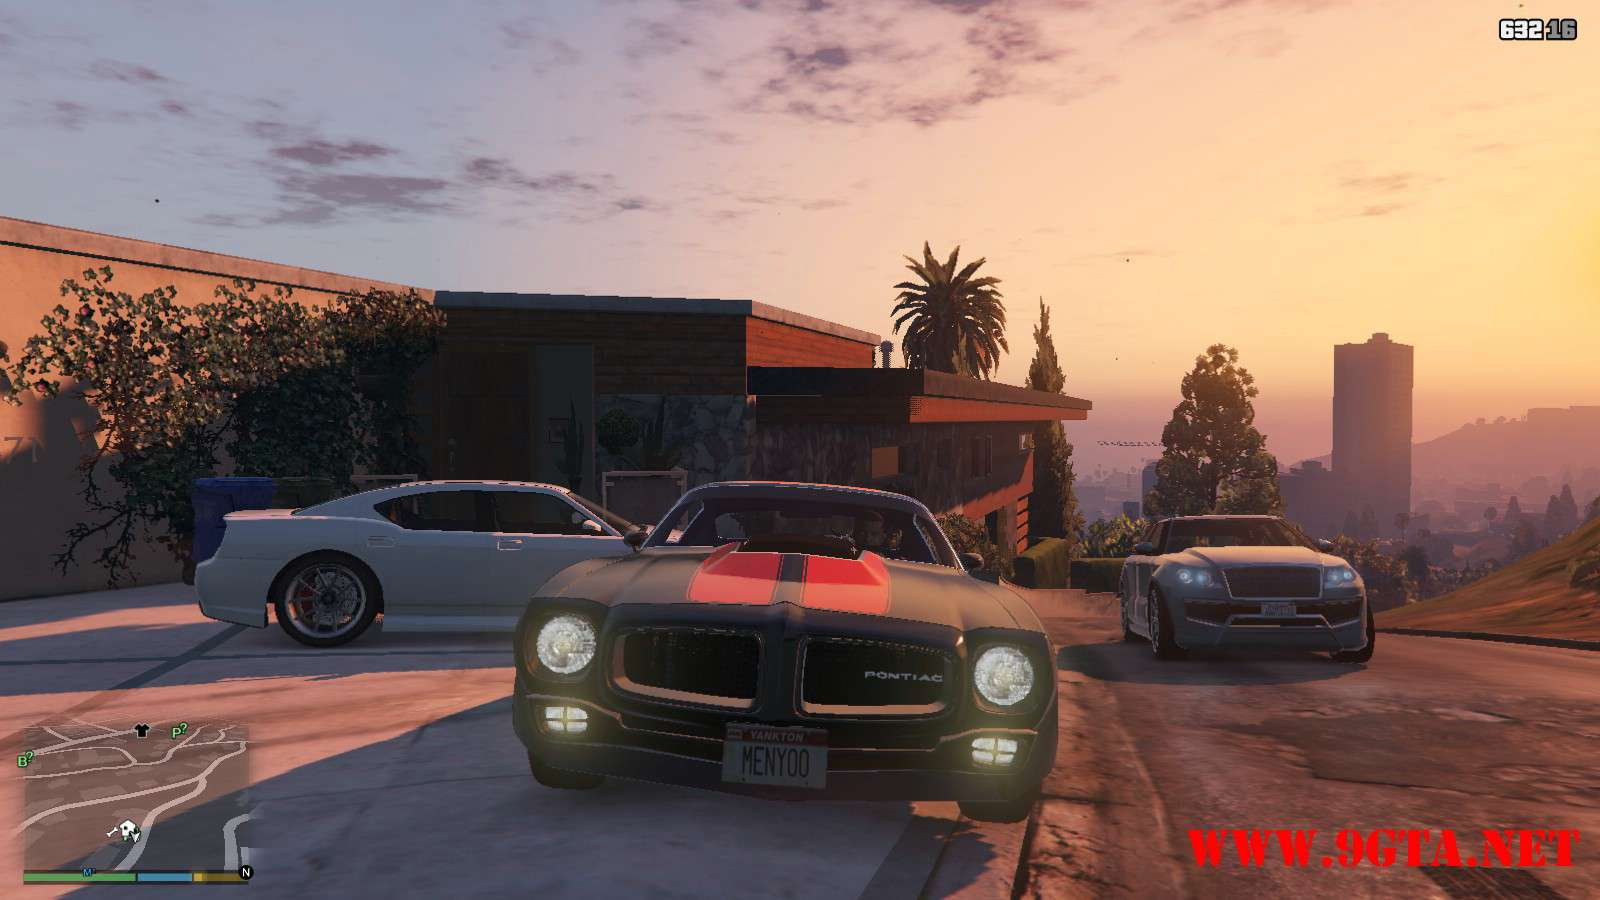 1970 Pontiac Firebird v1.0 GTA5 Mods (10)